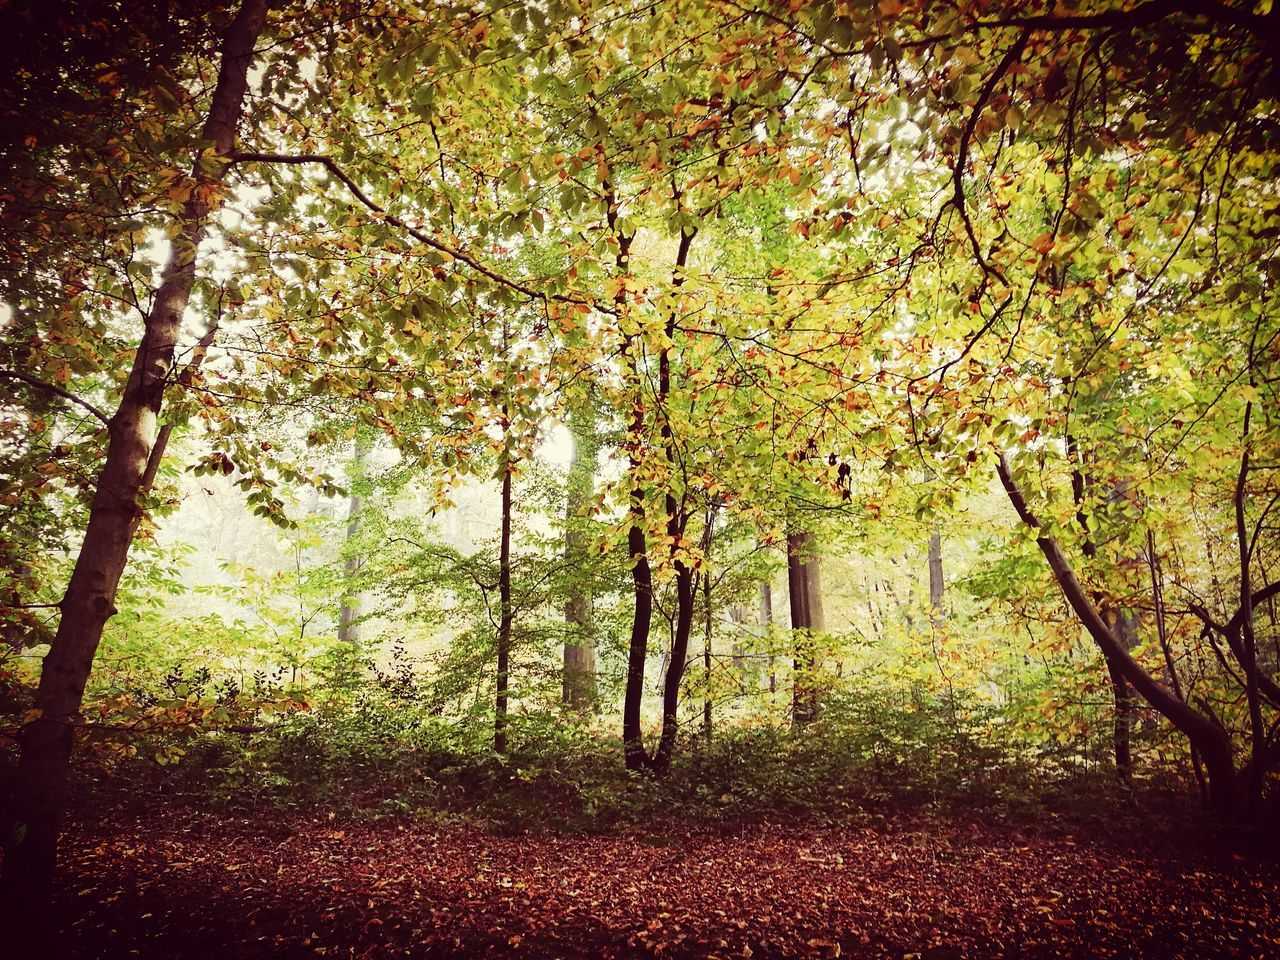 tree, nature, branch, autumn, beauty in nature, tranquility, growth, tranquil scene, no people, change, forest, scenics, tree trunk, day, outdoors, leaf